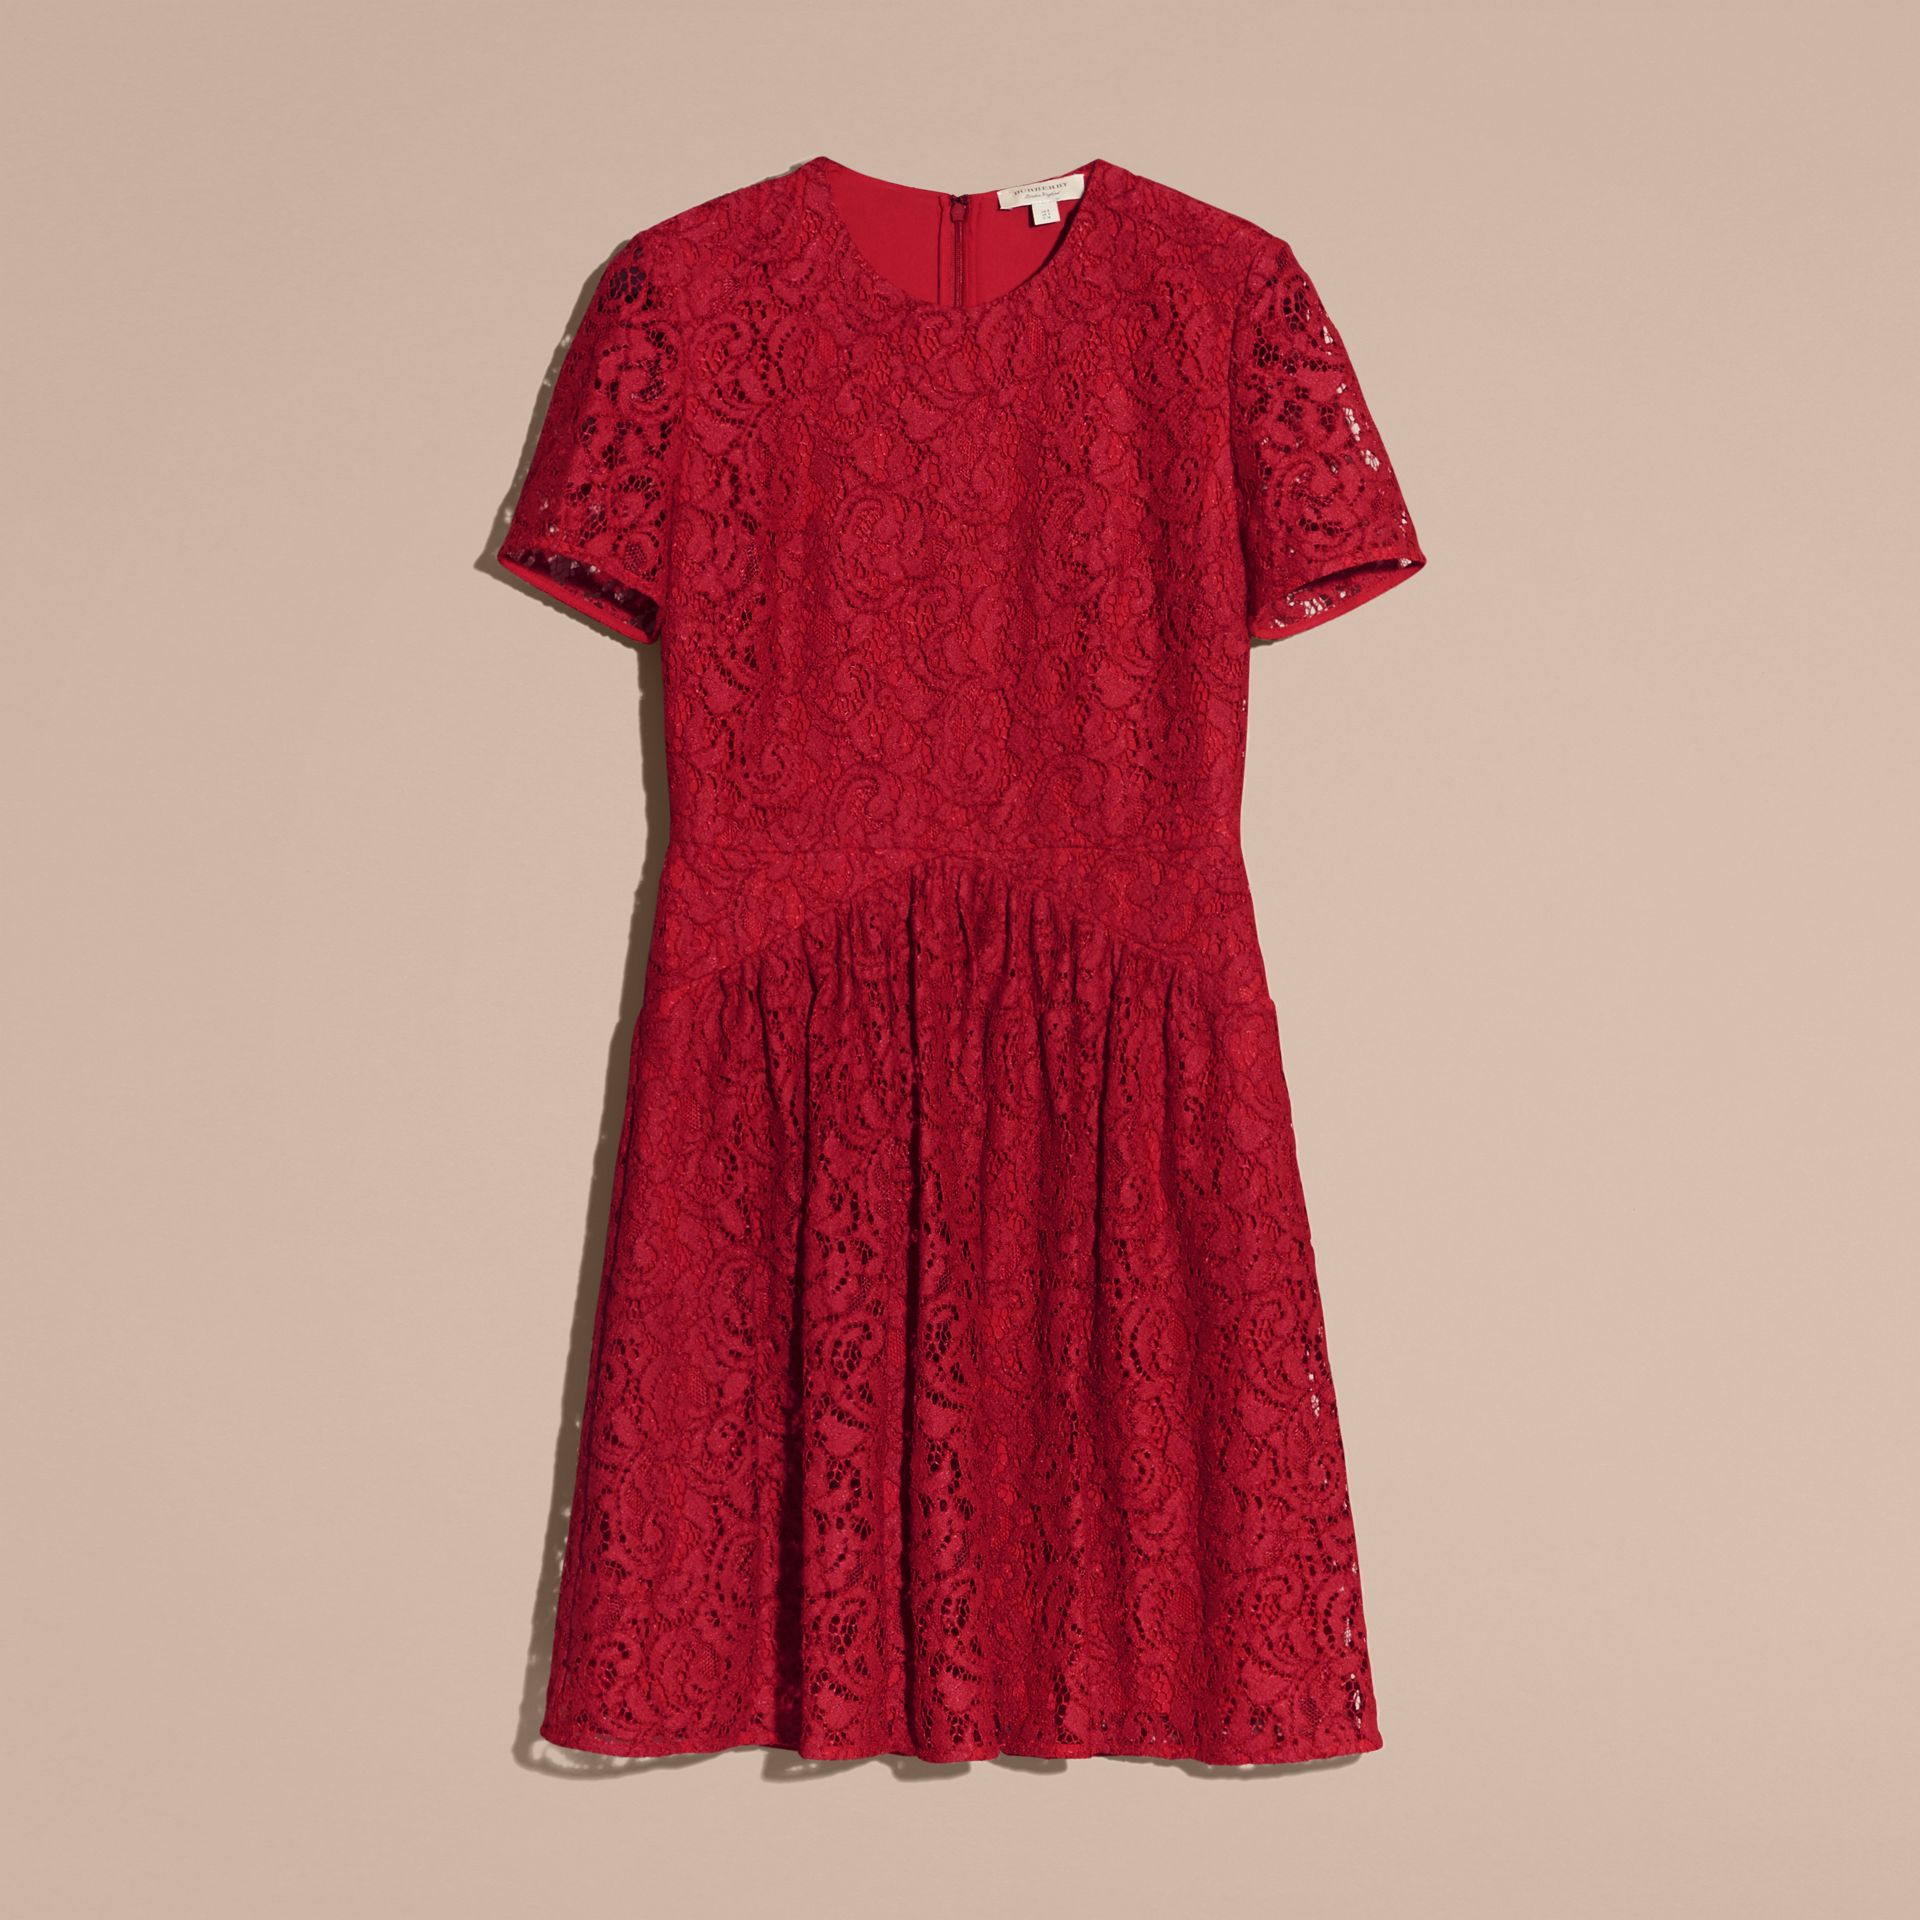 Parade red Fit-and-flare Dropped-waist Lace Dress Parade Red - gallery image 4